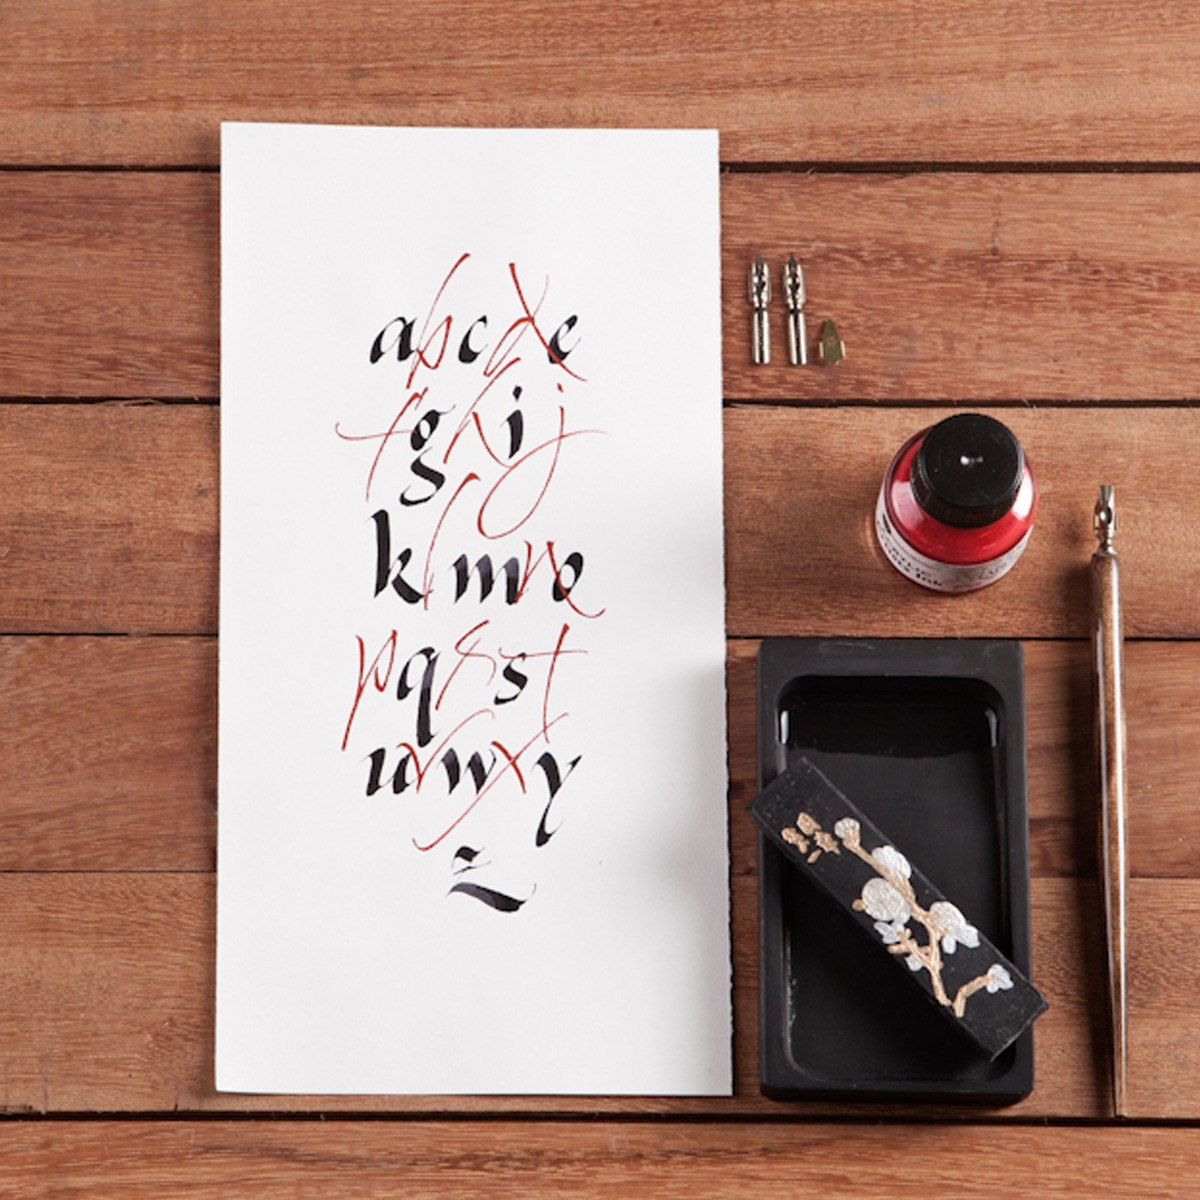 History_of_calligraphy